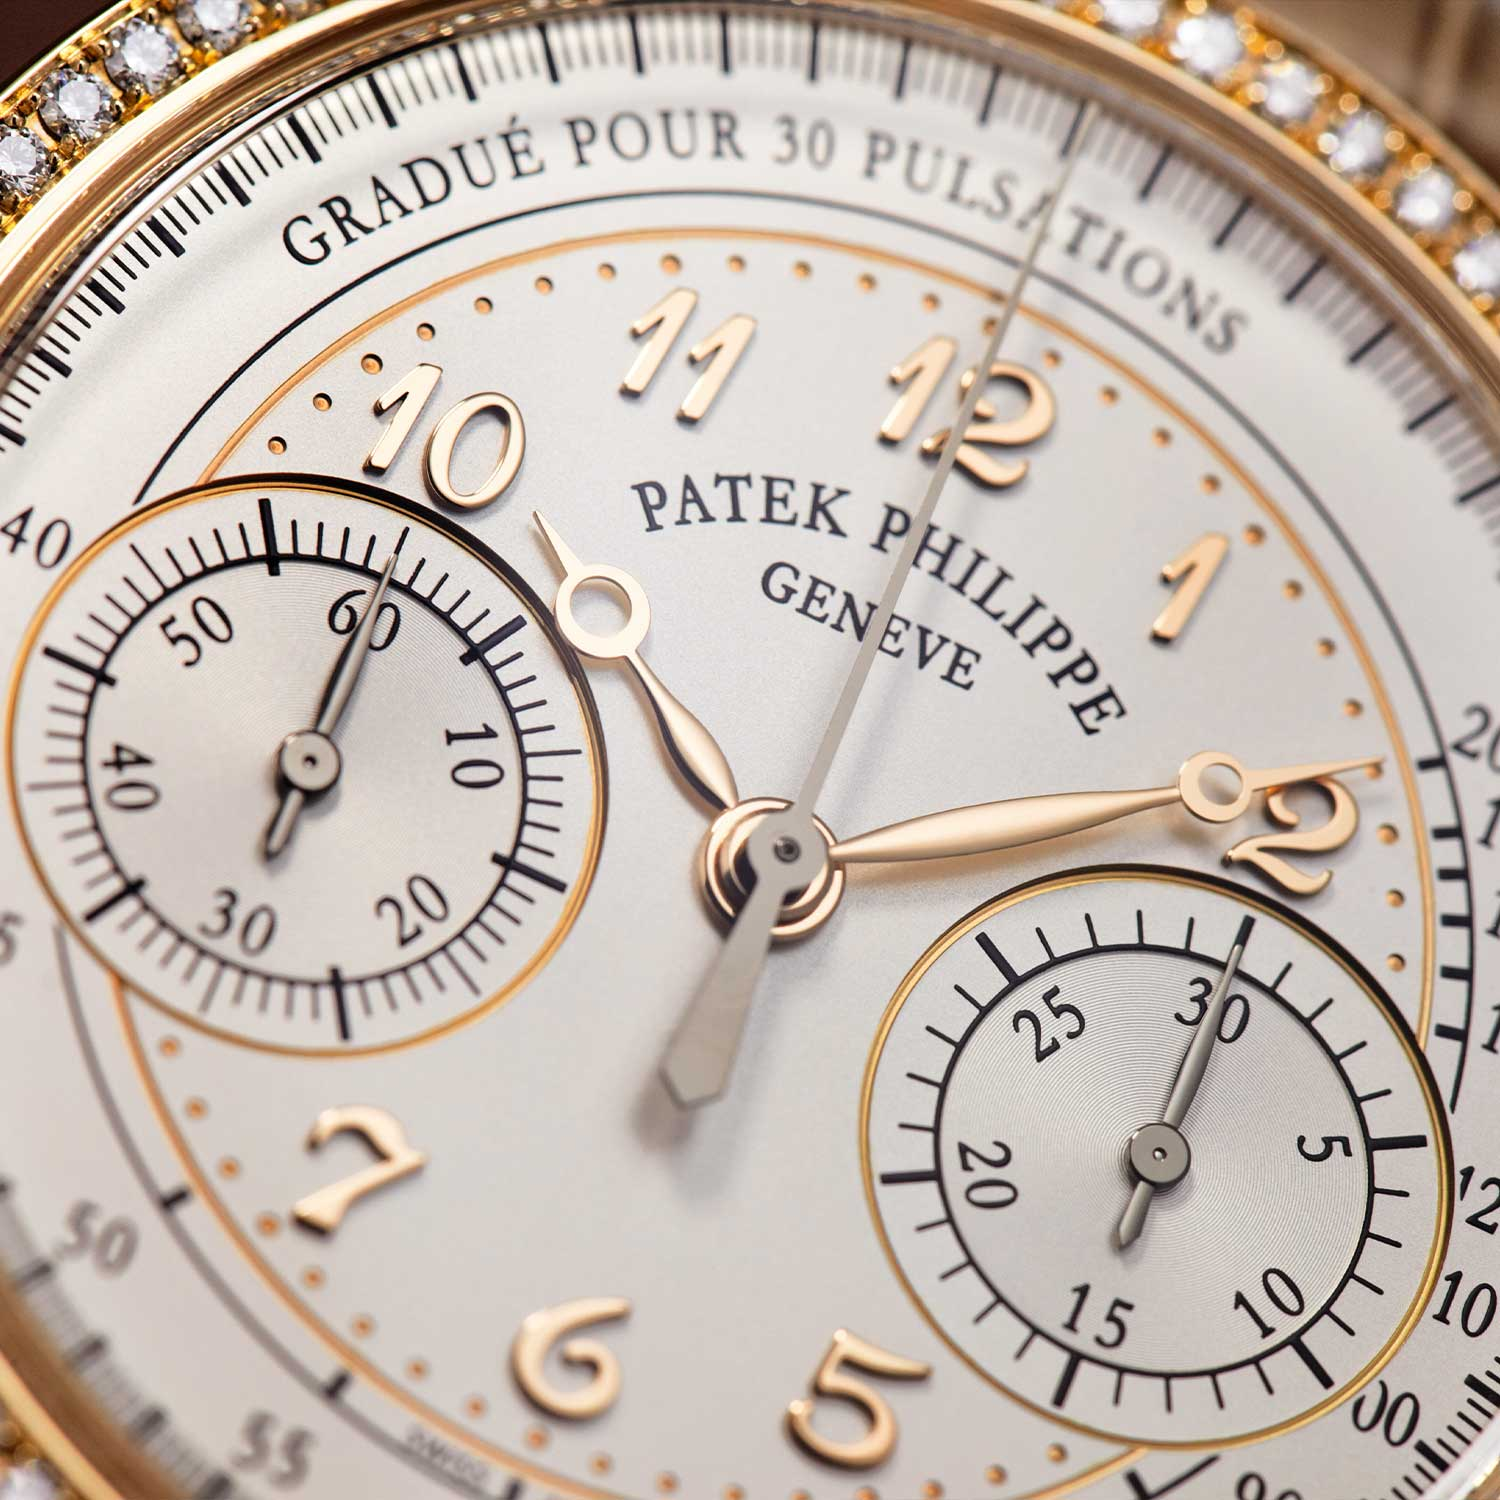 A closer look at the dial of the Ref. 7150-250R-001 with the pulsation scale, applied Breguet Numerals and Breguet hands